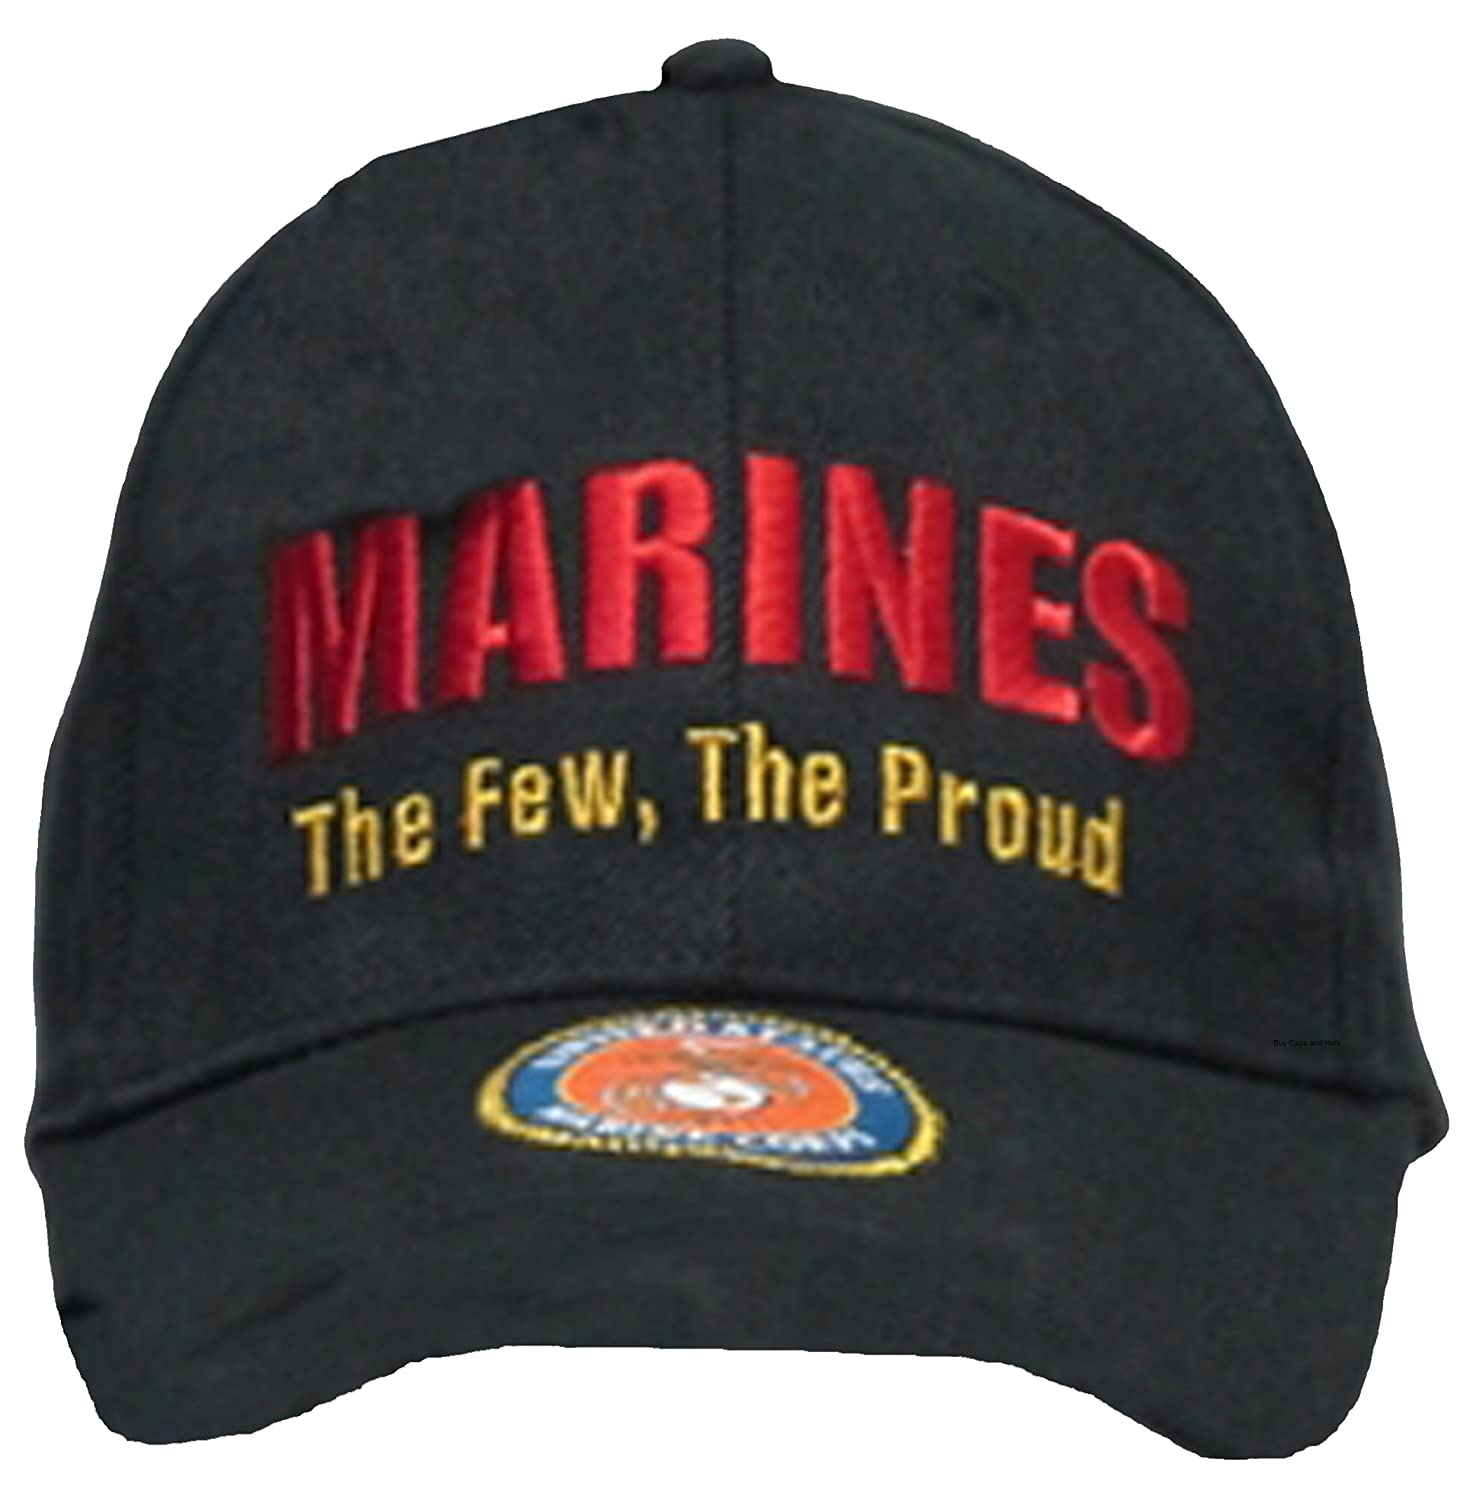 Buy Caps and Hats U.S. Marine Corps USMC Insignia Hat Cap Black Marines US  Military Baseball Caps 52abccc4b3c